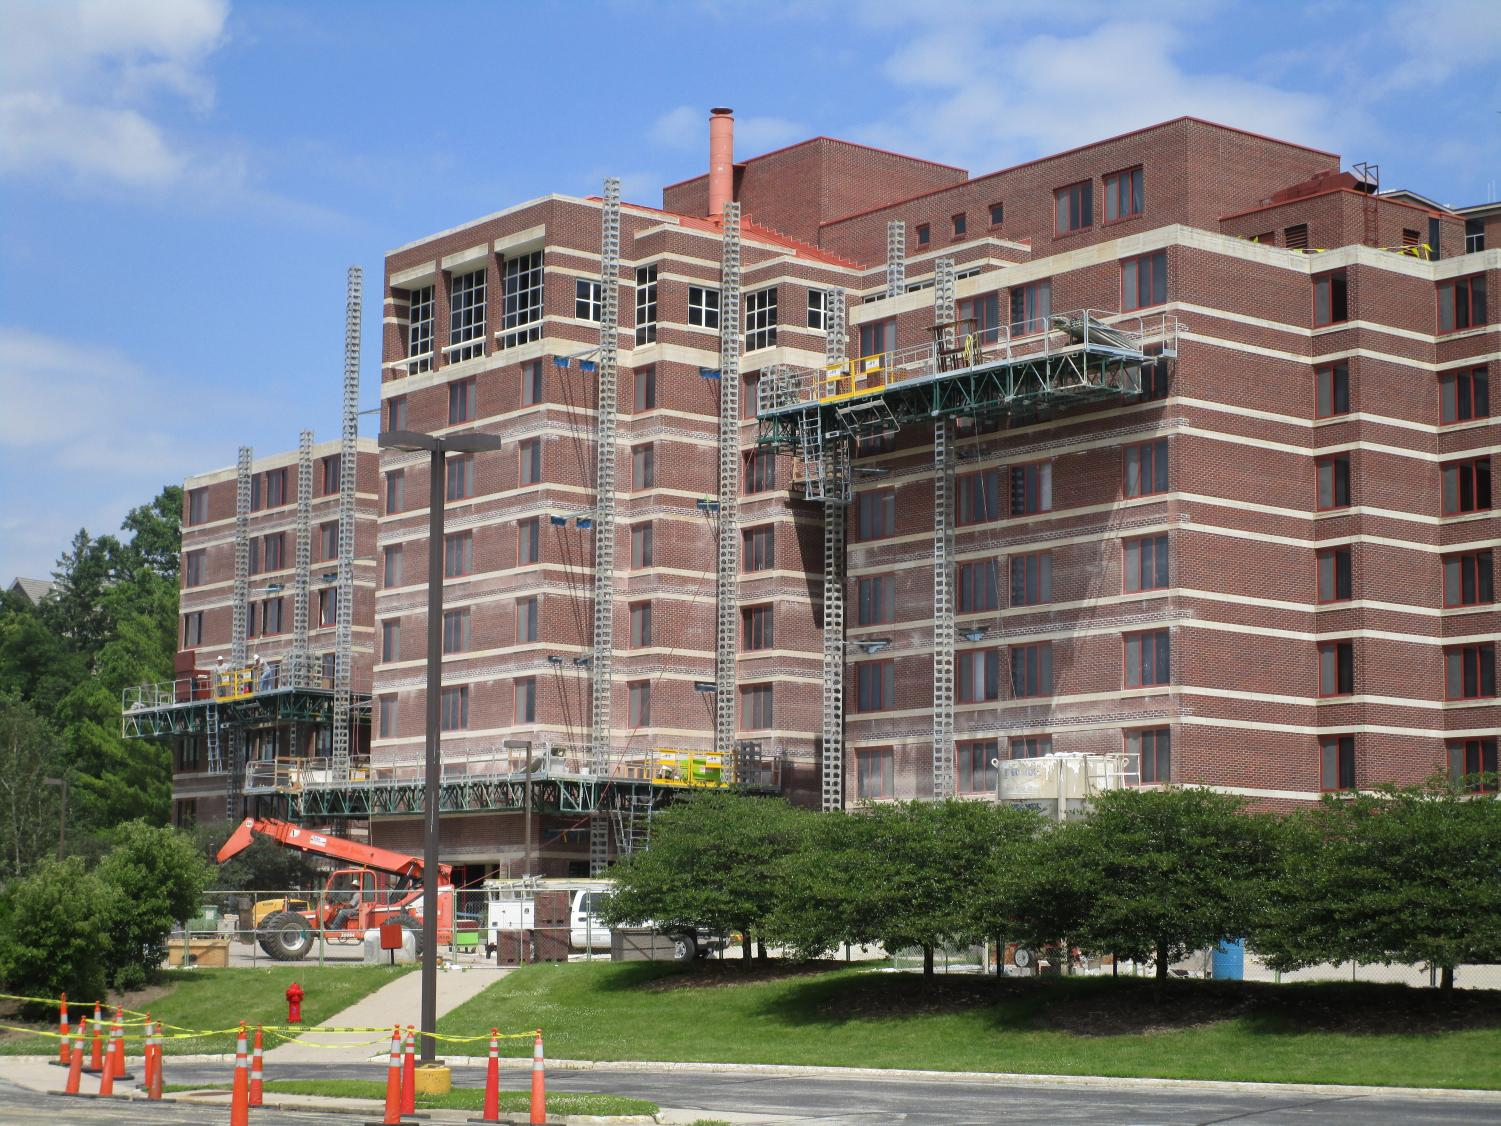 Farwell Hall and Larsen Hall faced moisture problems that required maintenance.